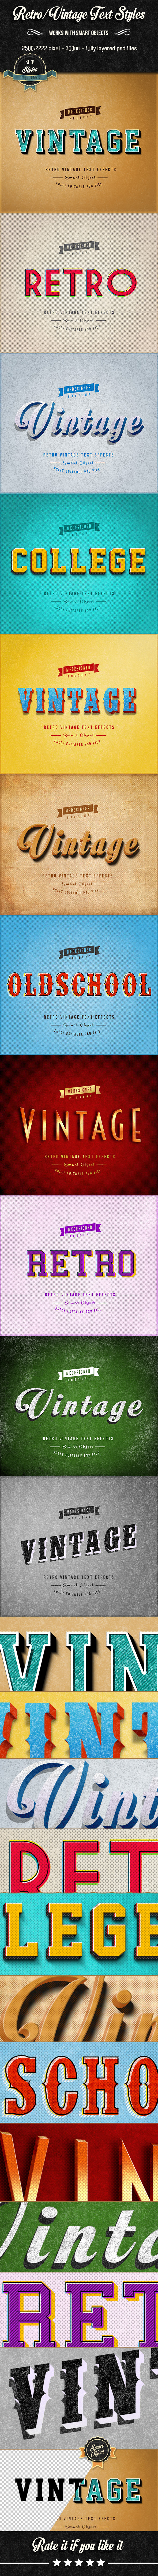 Retro Vintage Text Effects V.1